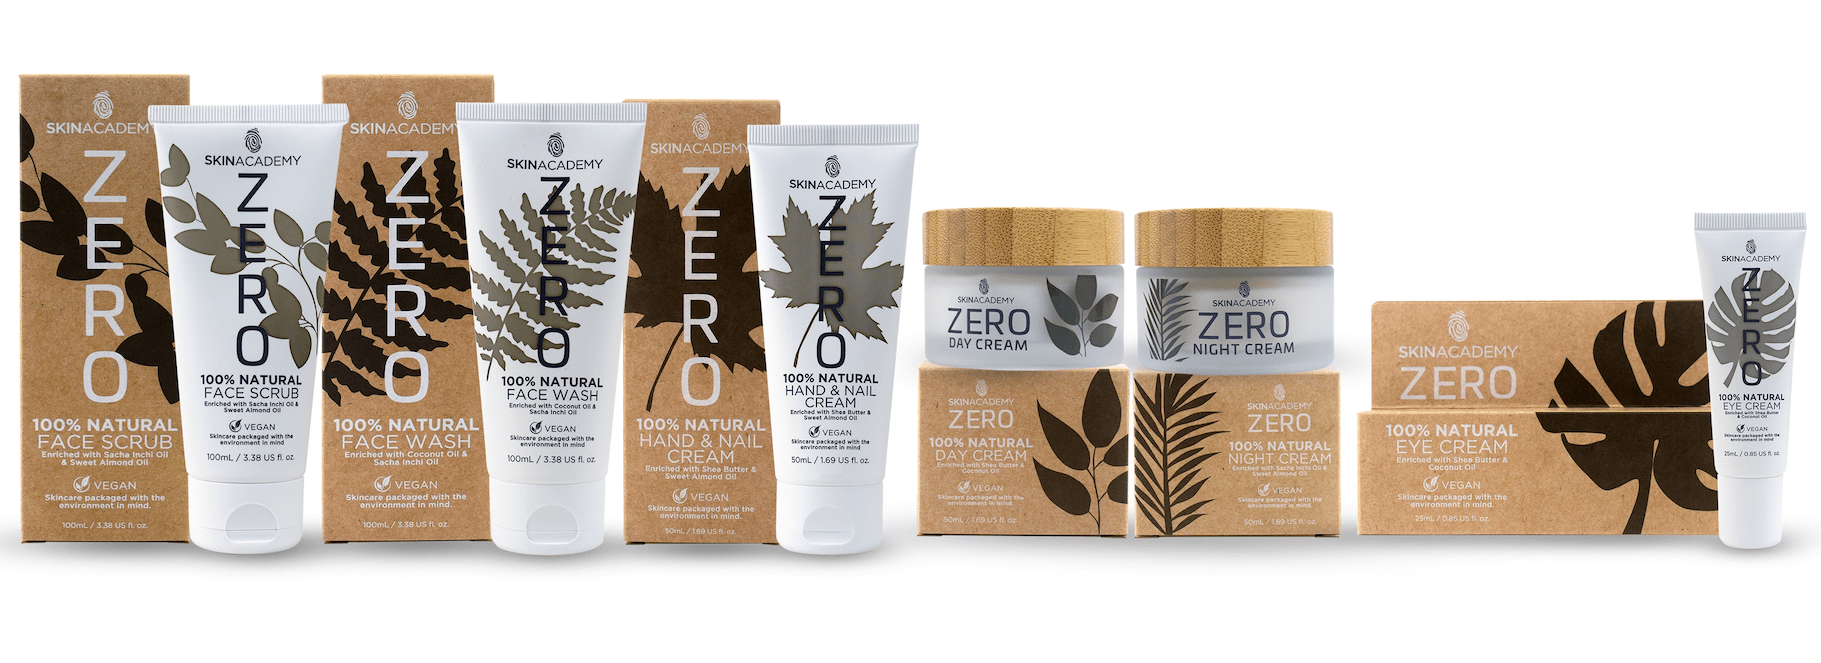 THE LAUNCH OF SKIN ACADEMY'S ZERO SKINCARE LINE